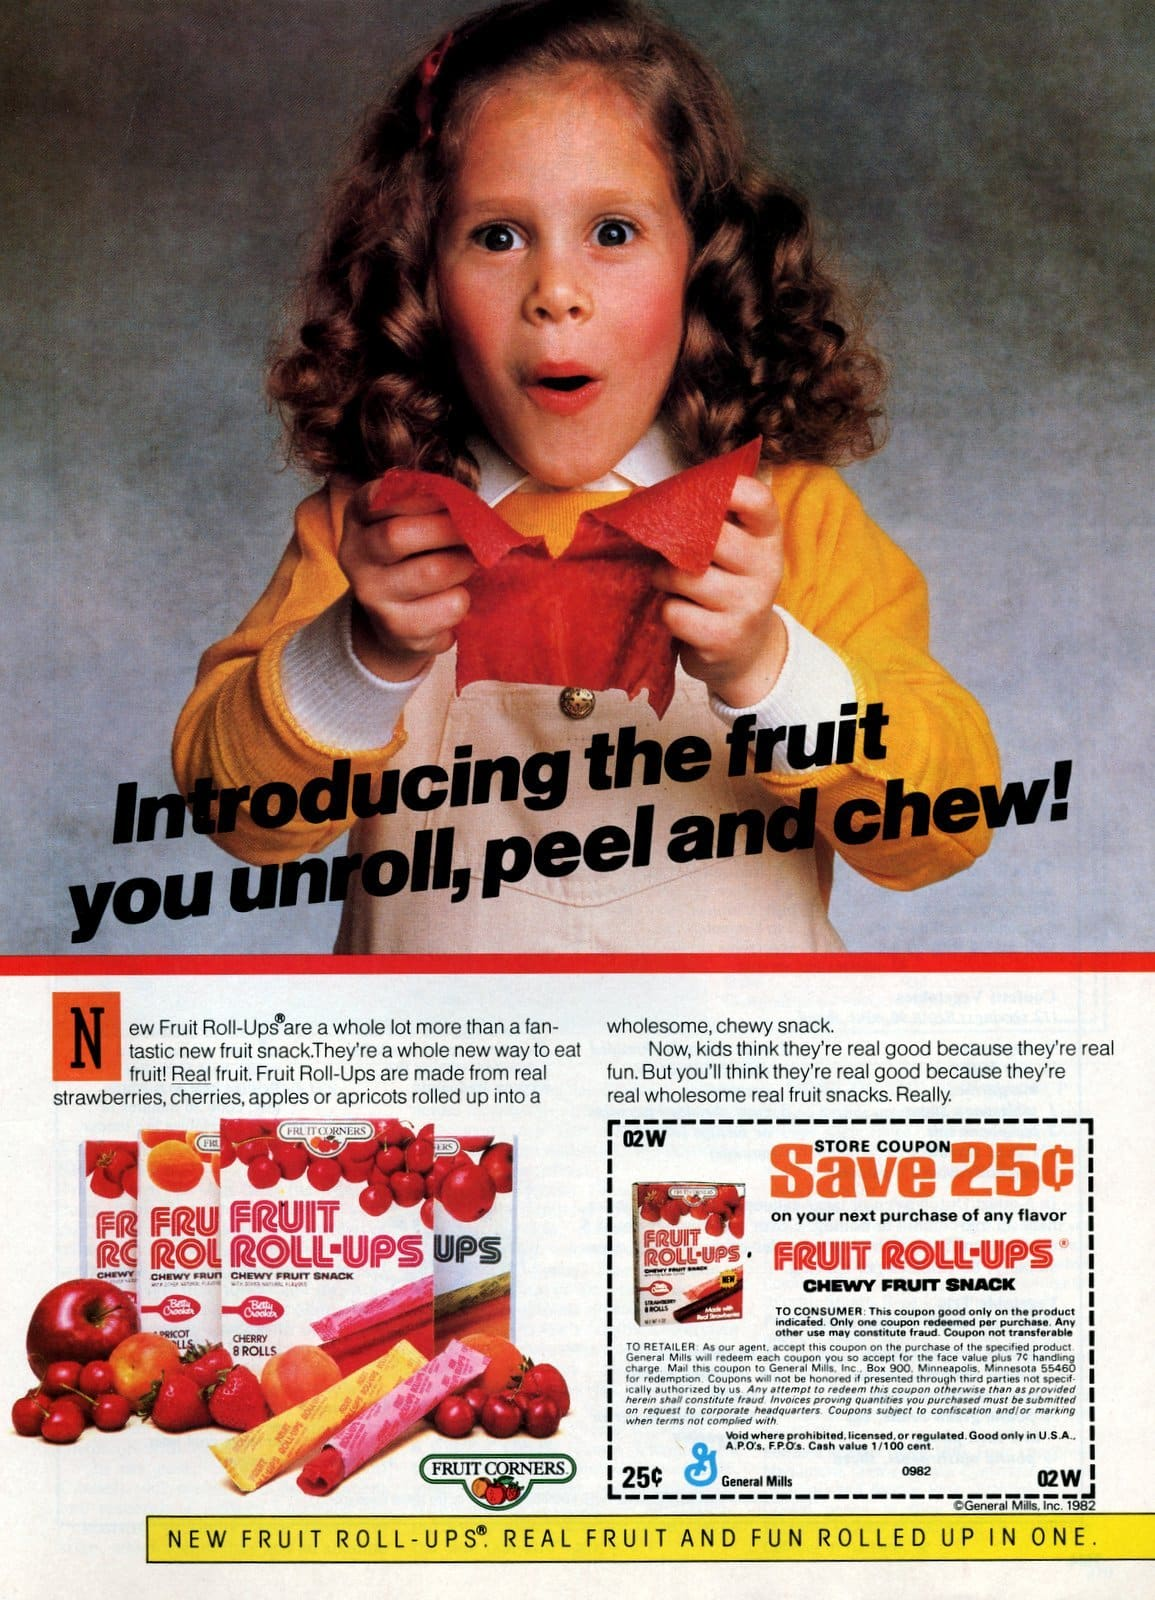 Vintage Fruit Roll-Ups from Fruit Corners (1982)